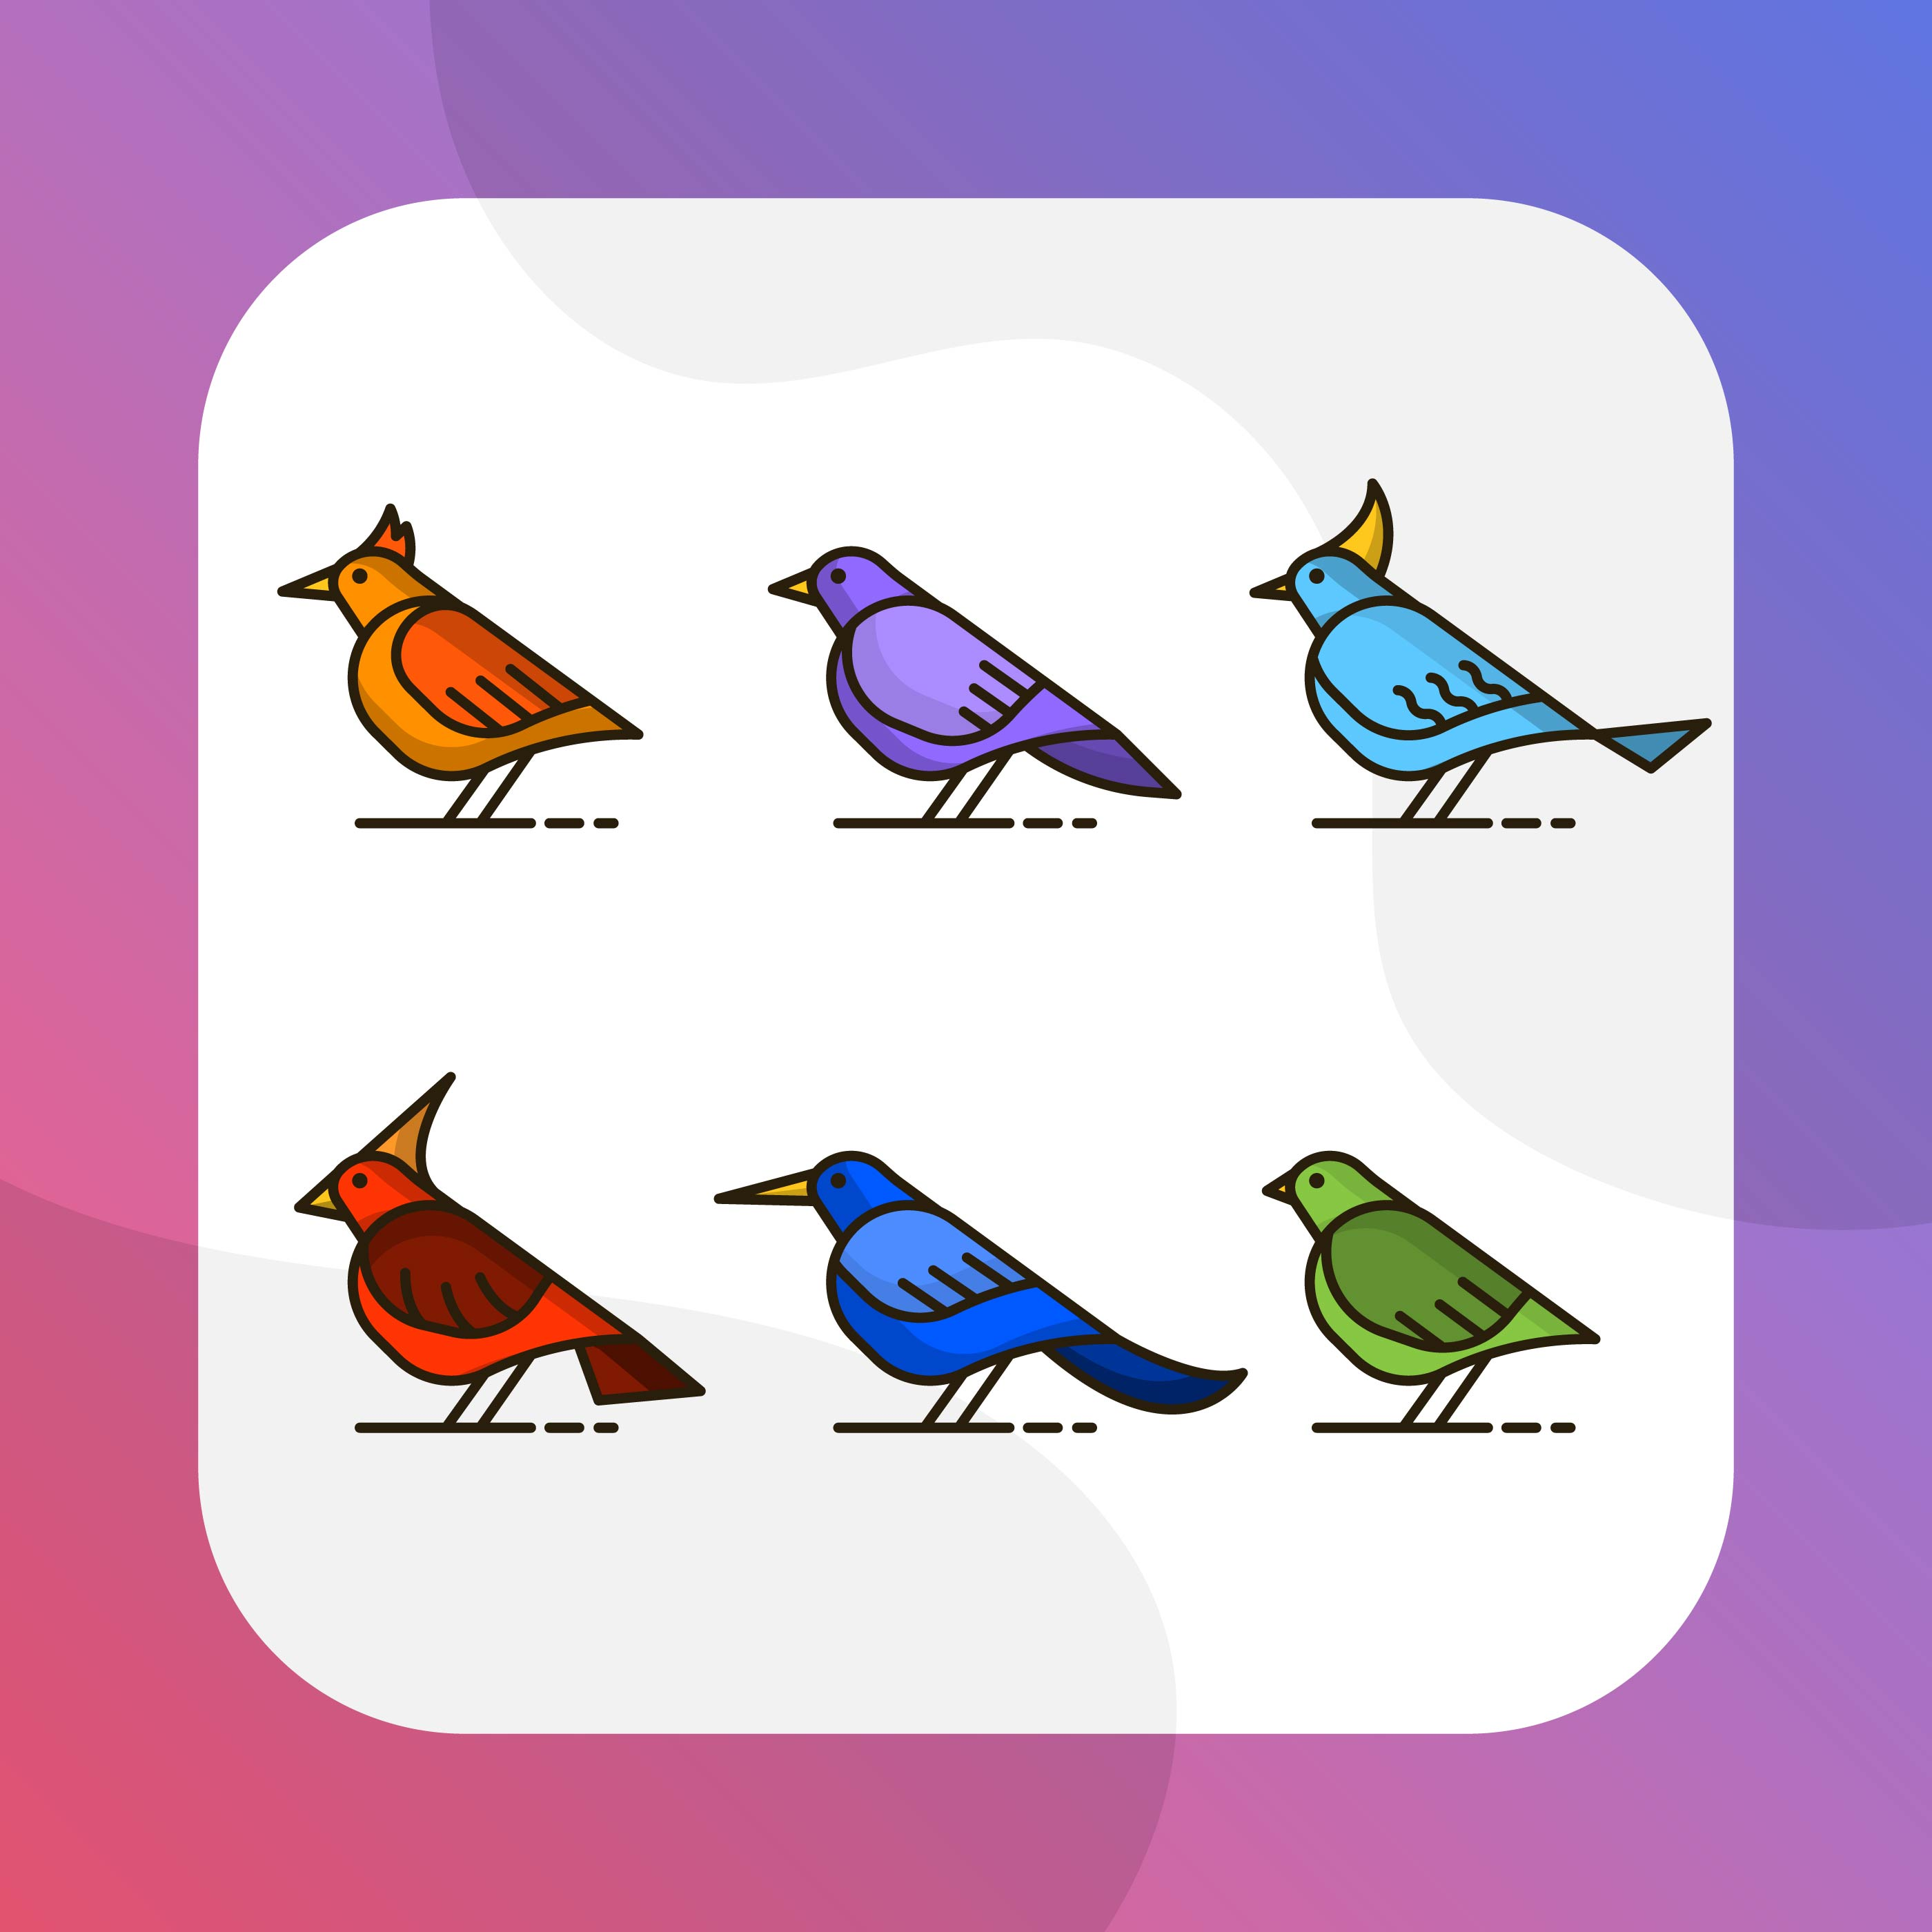 Graasisken Colored, Colorful Bird In Fantasy Colors - Colorful Bird Clipart,  Cliparts & Cartoons - Jing.fm